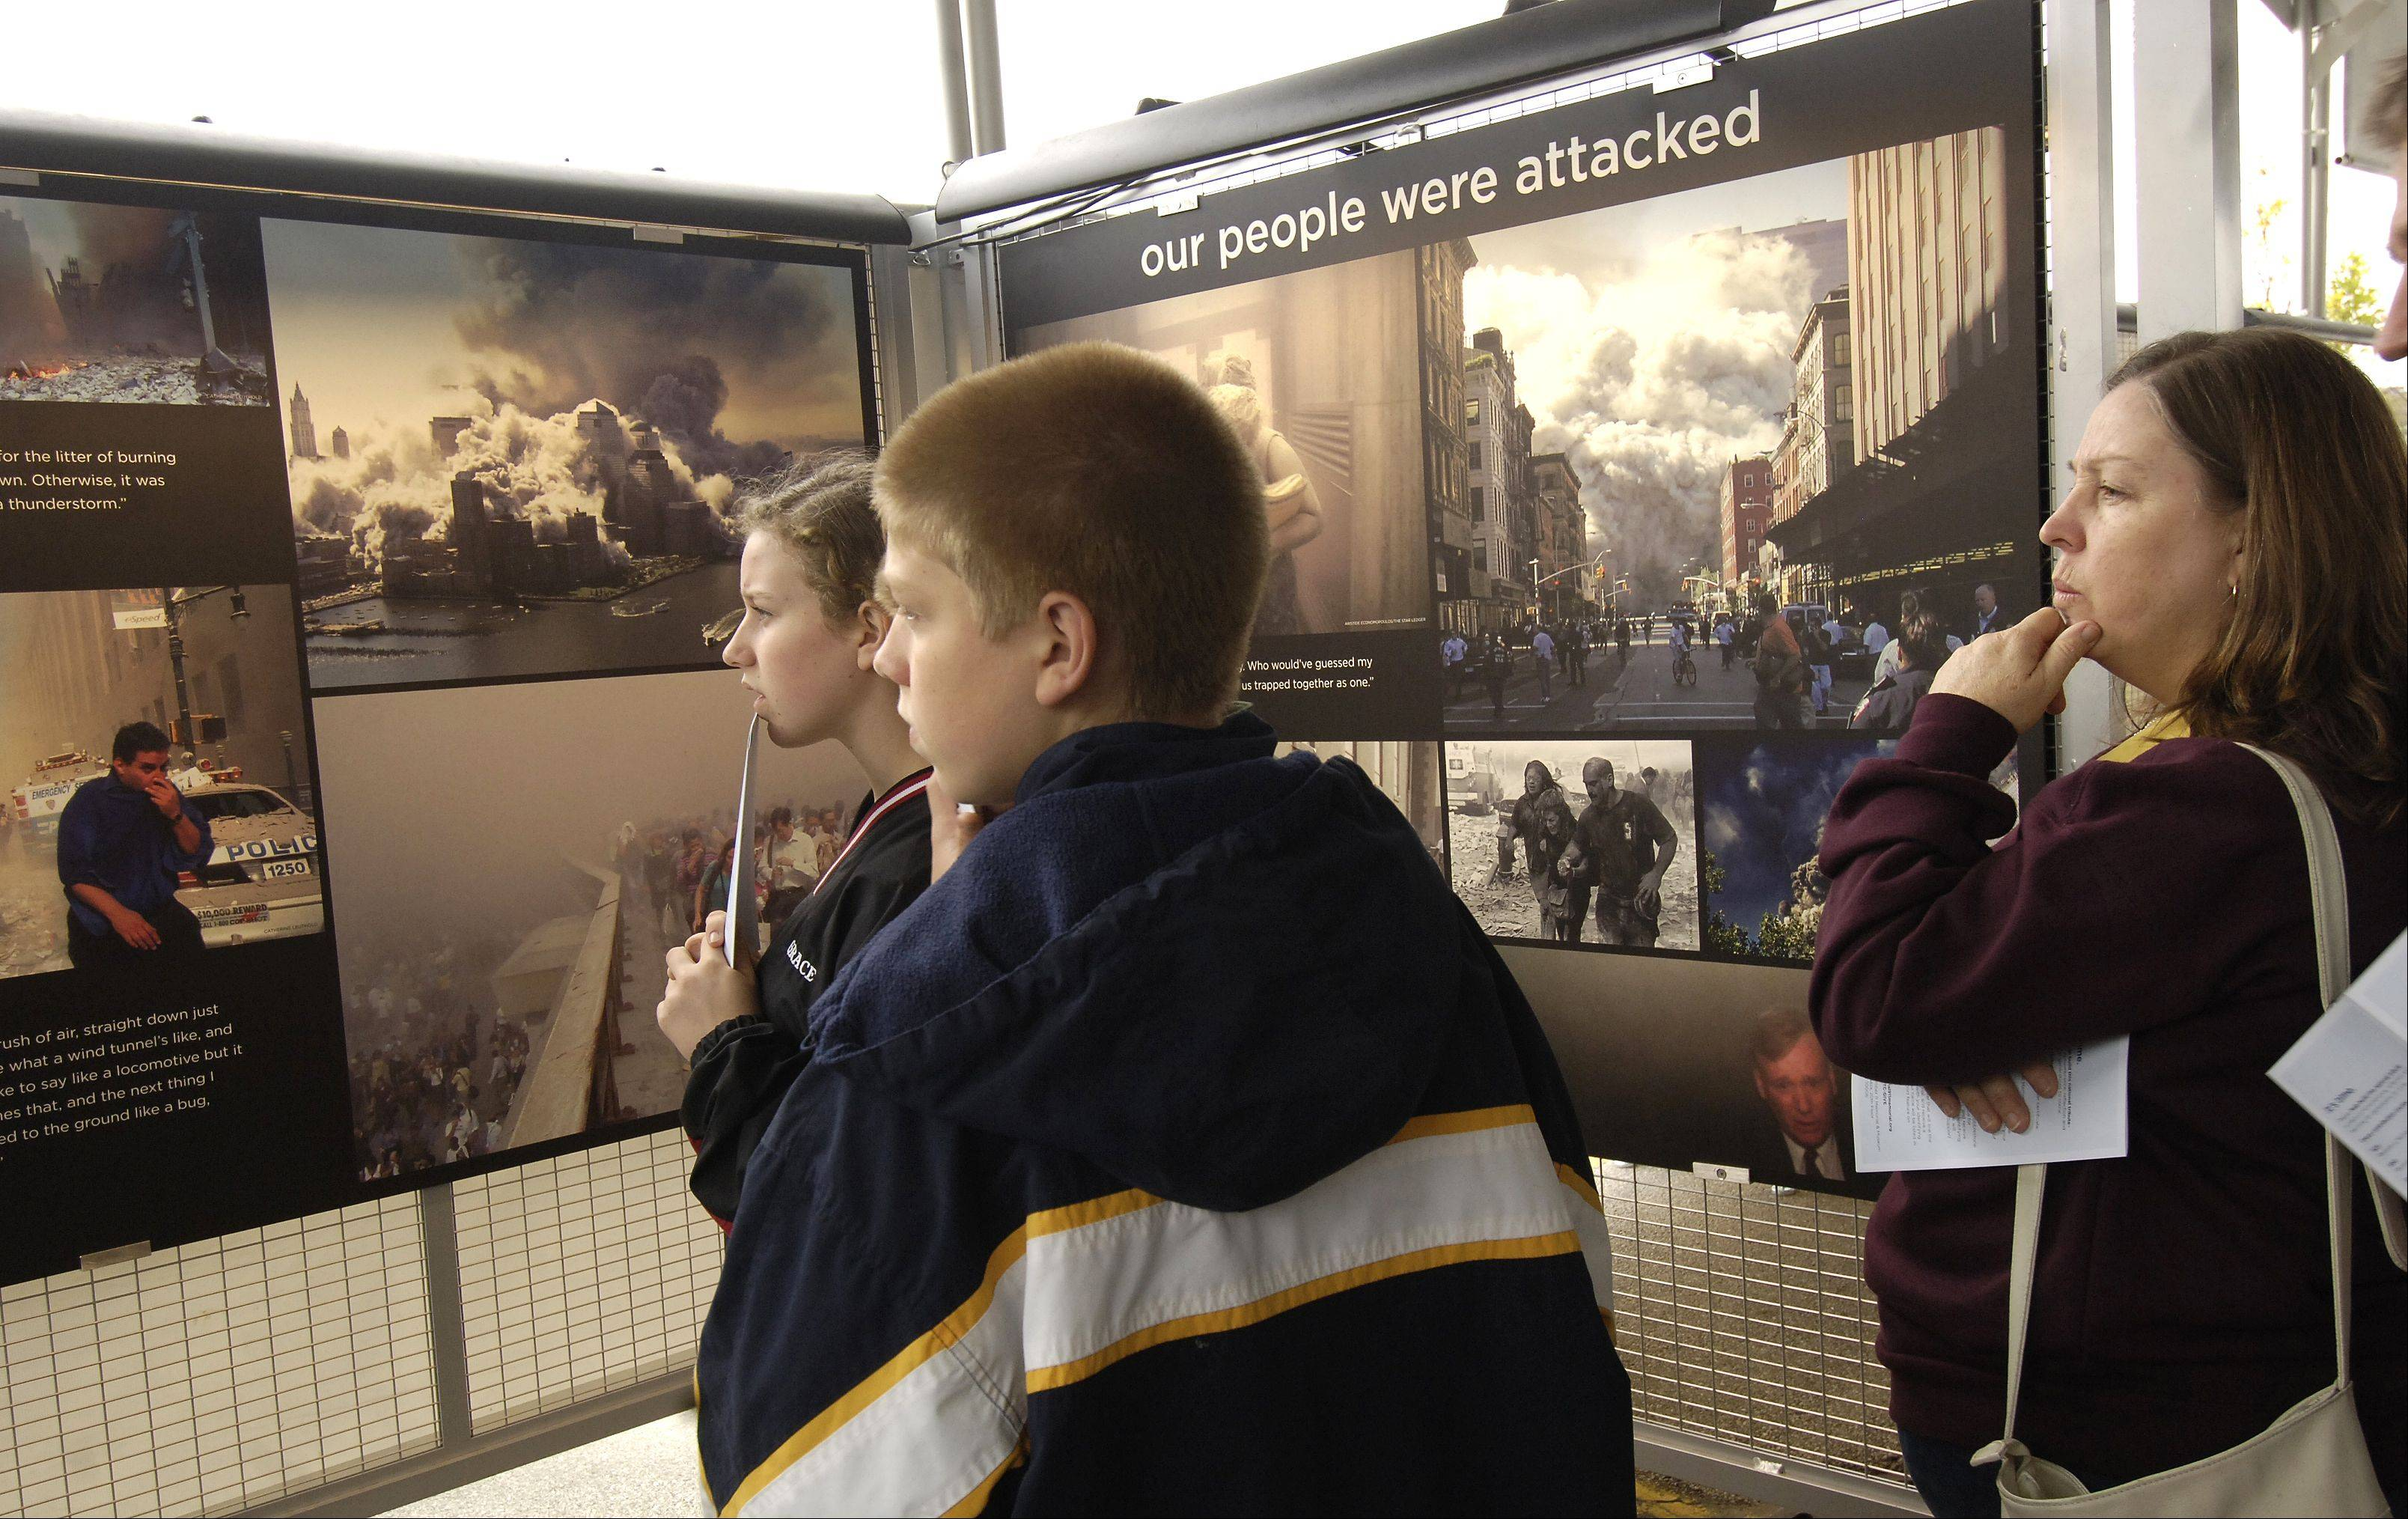 An exhibit showing photos of the World Trade Center immediately following the Sept. 11 terrorist attacks of 2001 can be viewed at the Aurora Regional Fire Museum, 53 N. Broadway St., following Aurora�s 10th anniversary remembrance ceremony at 10 a.m. Friday, Sept. 9.